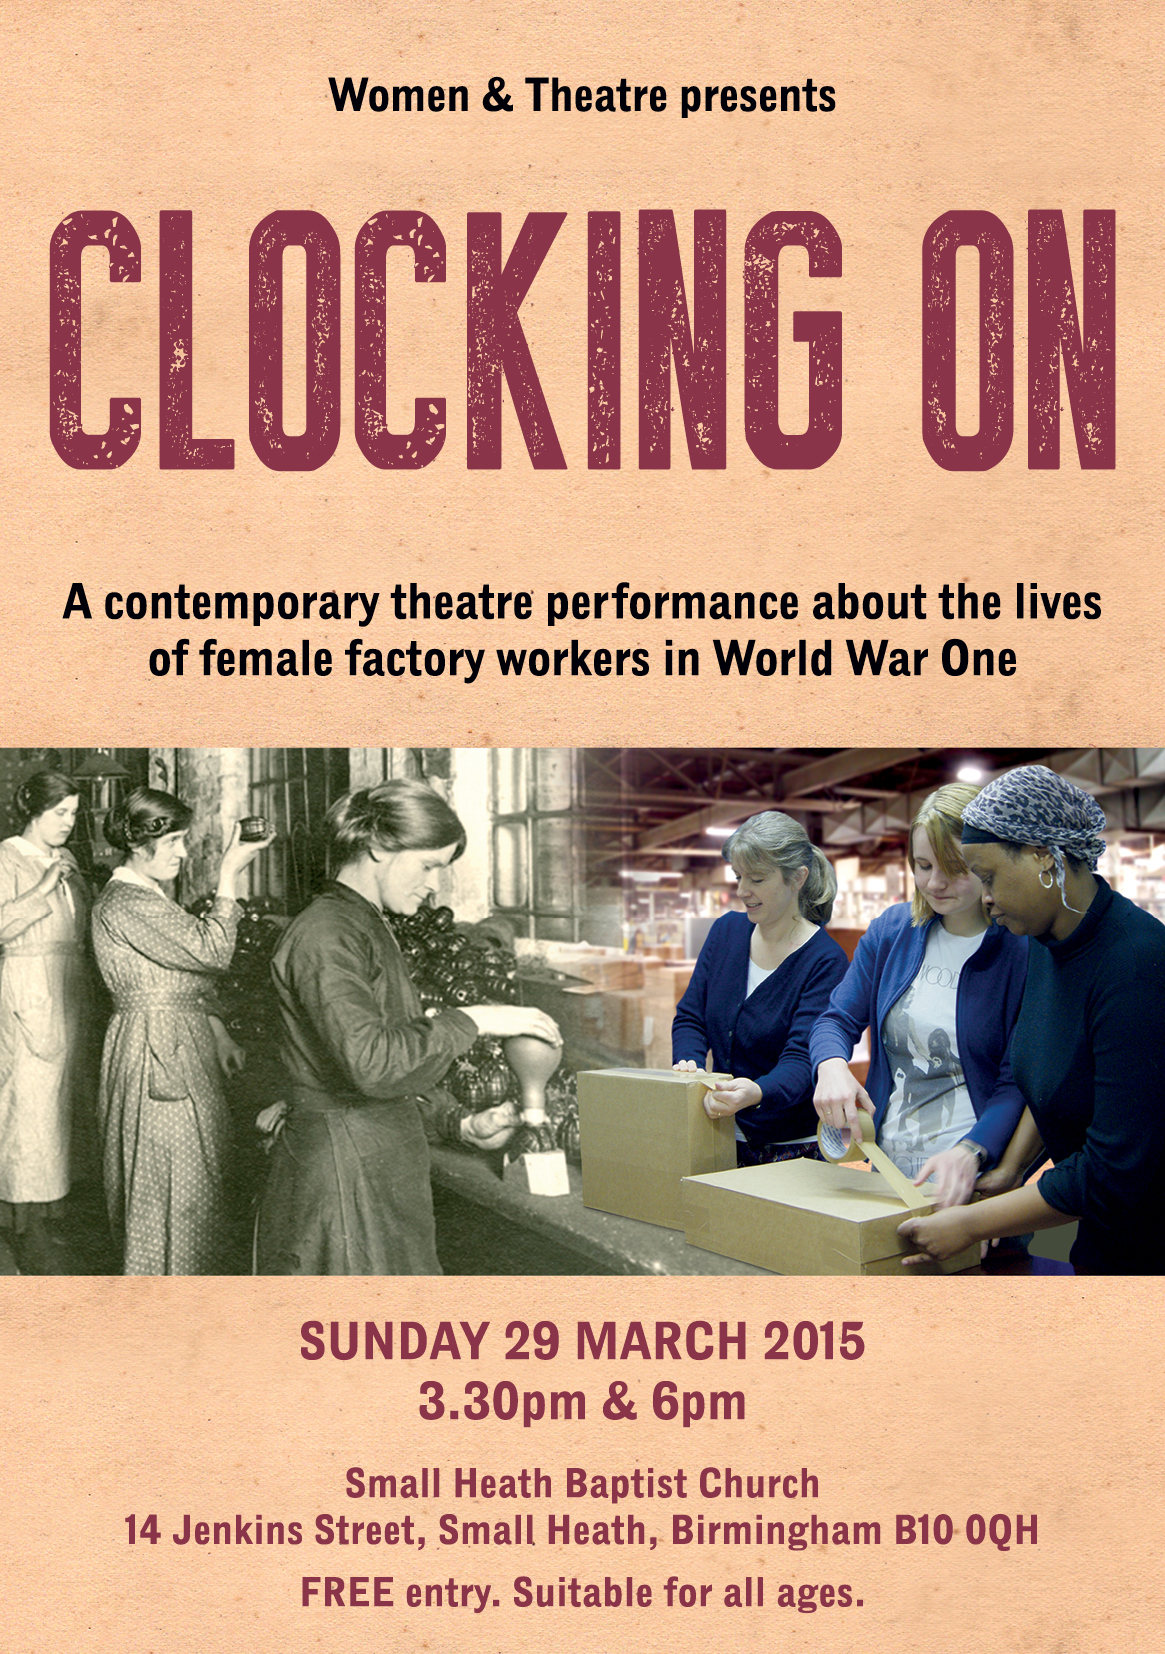 Women & Theatre Clocking On Leaflet Front